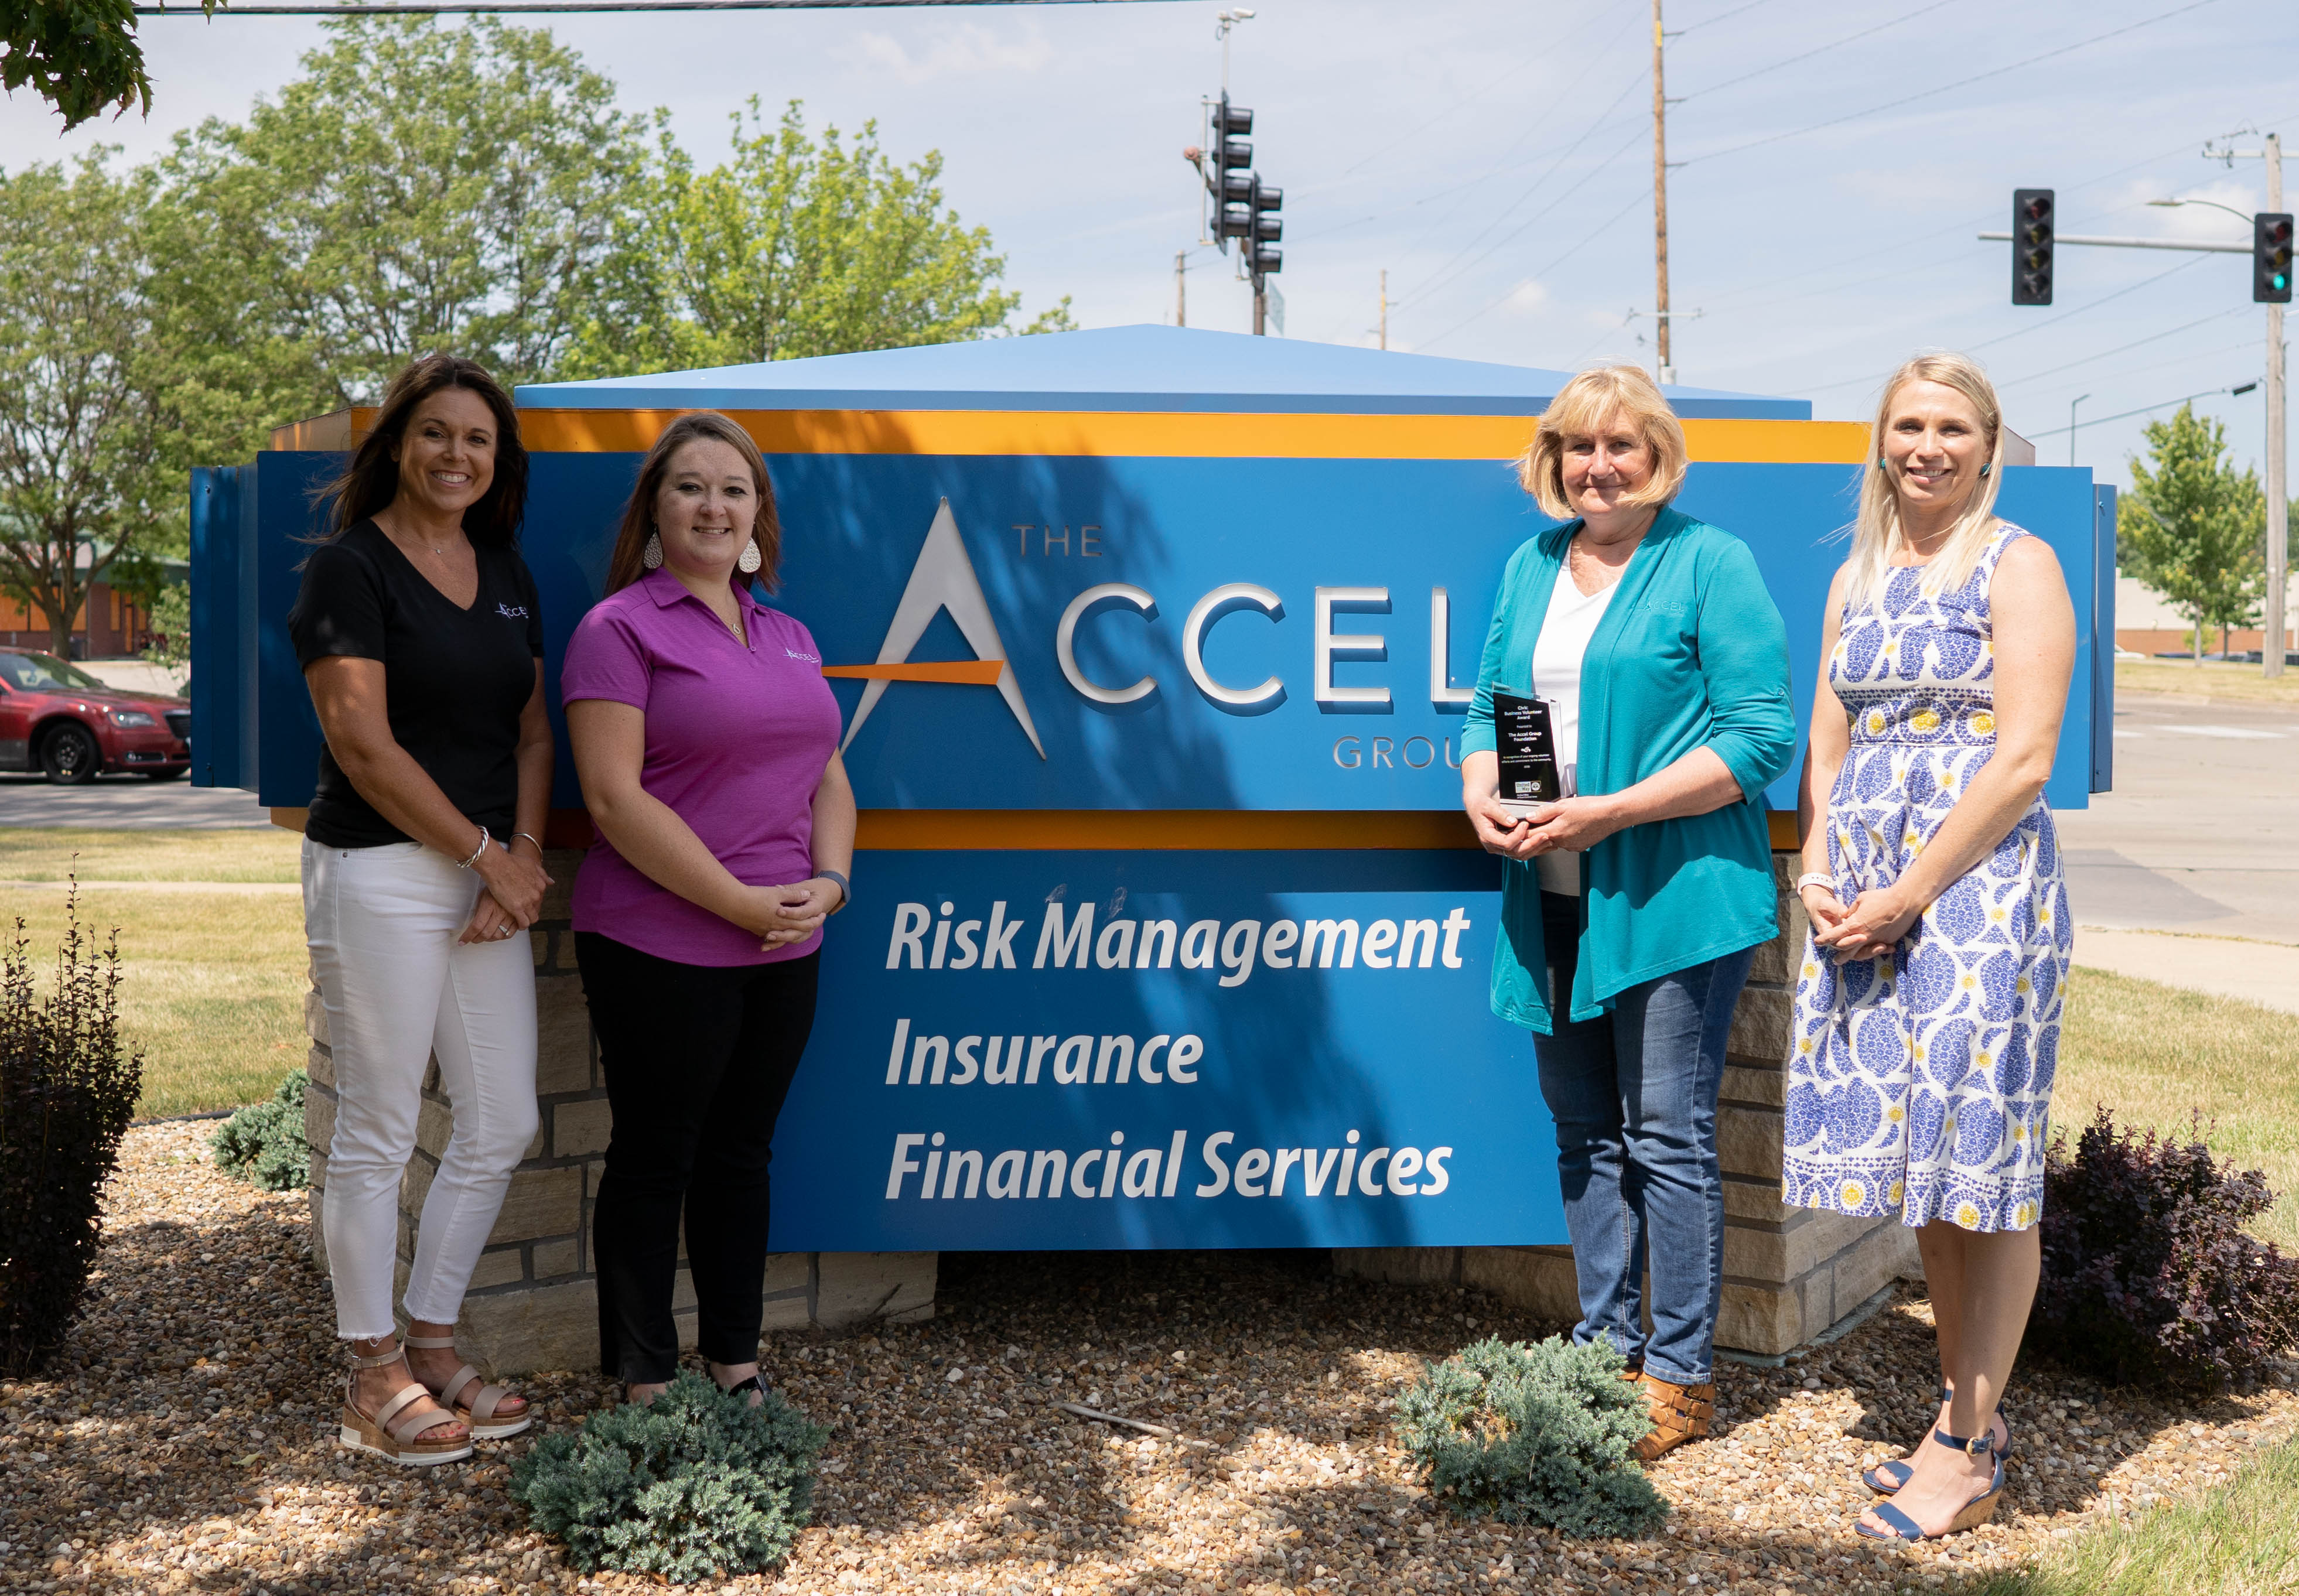 The Accel Group Foundation